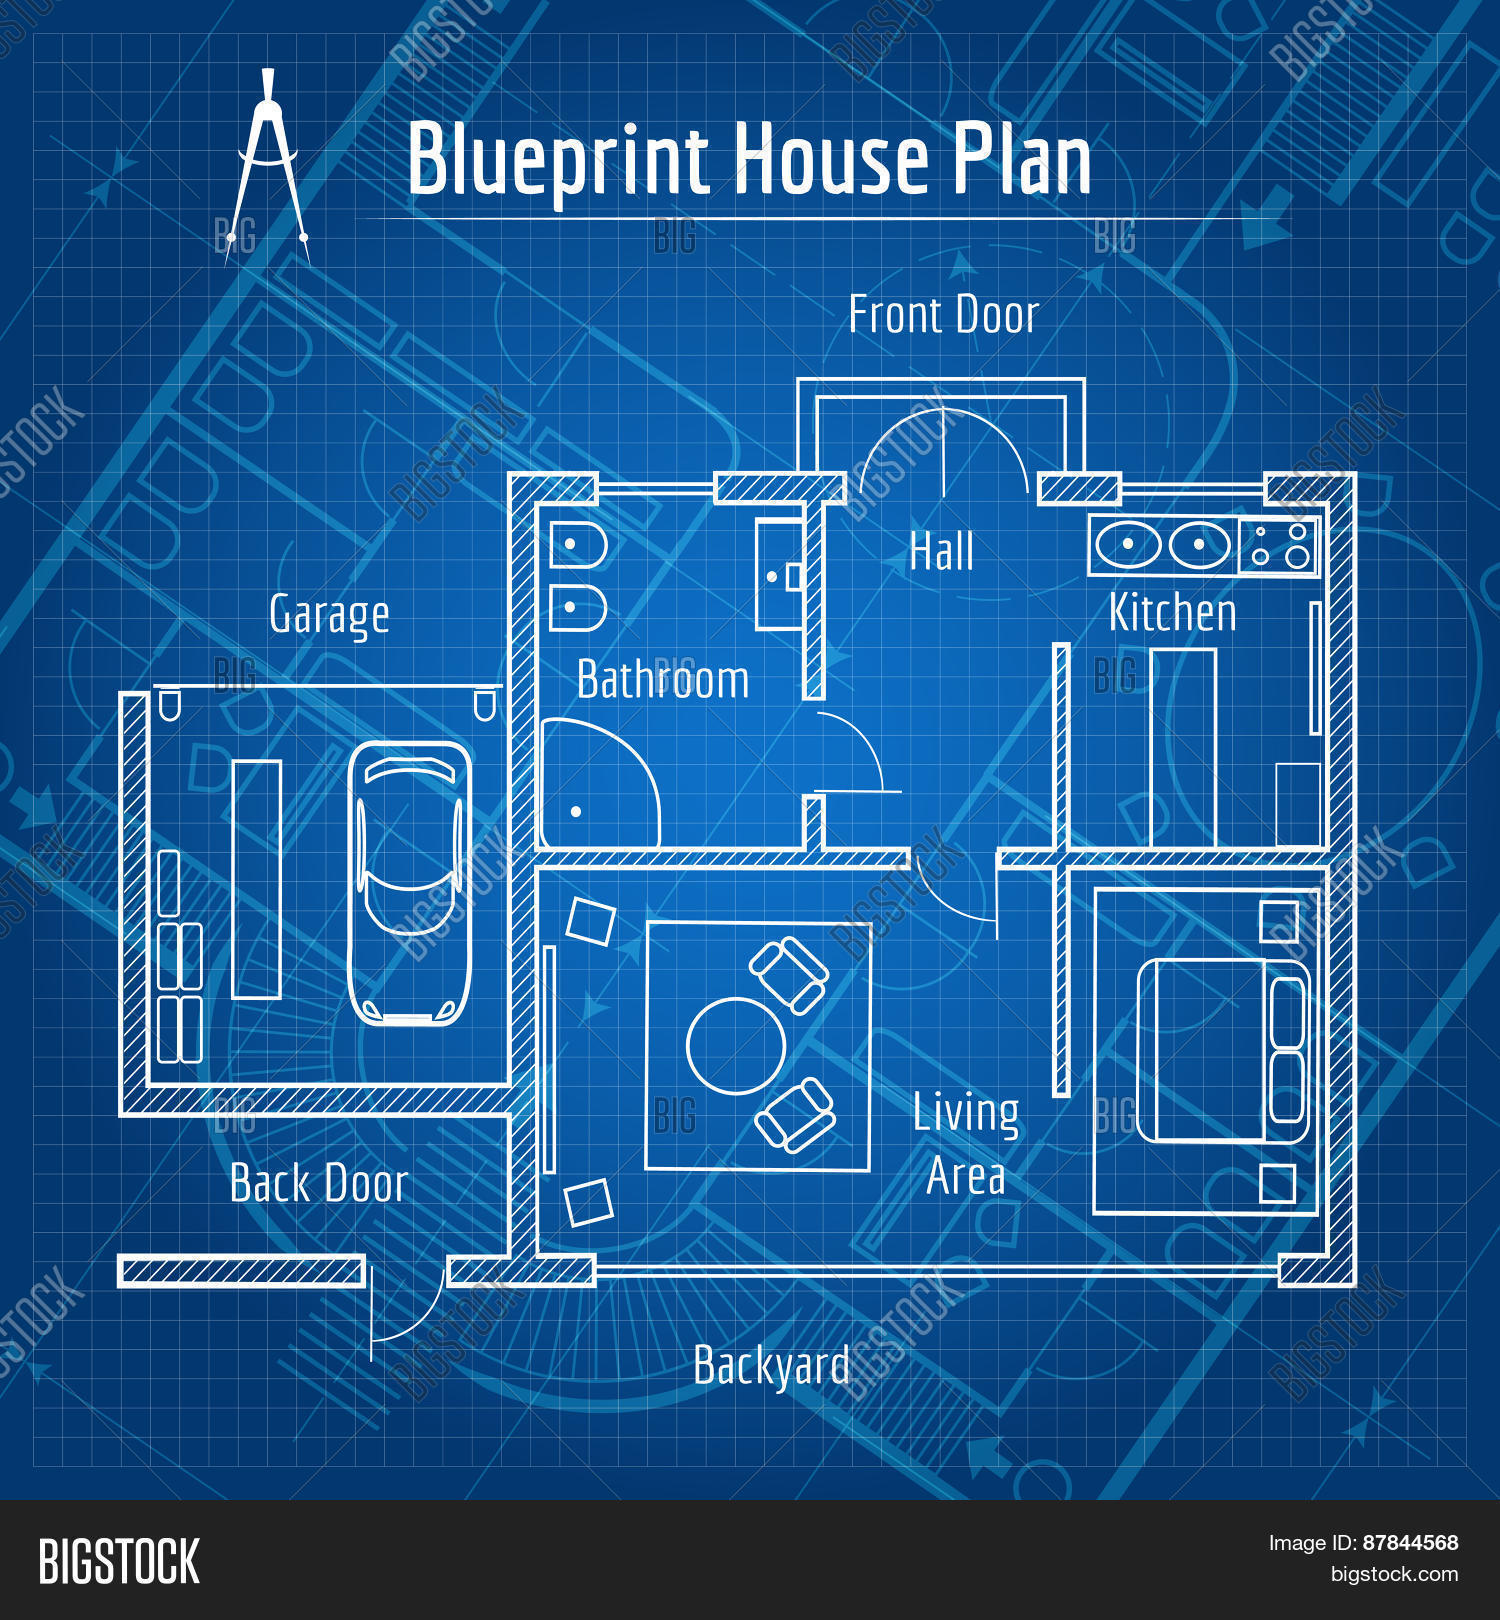 Blueprint House Plan Vector & Photo (Free Trial) | Bigstock on free house drawing, modern home design plans, free land, floor plans, free toys, free blueprints, free house agreements, free marriage, free lifestyle, free home, free house models, free printable notebook planner, free clip art black and white house, free business, free house values, extreme makeover home plans, free modern houses, free house ideas, building plans, free house budget,